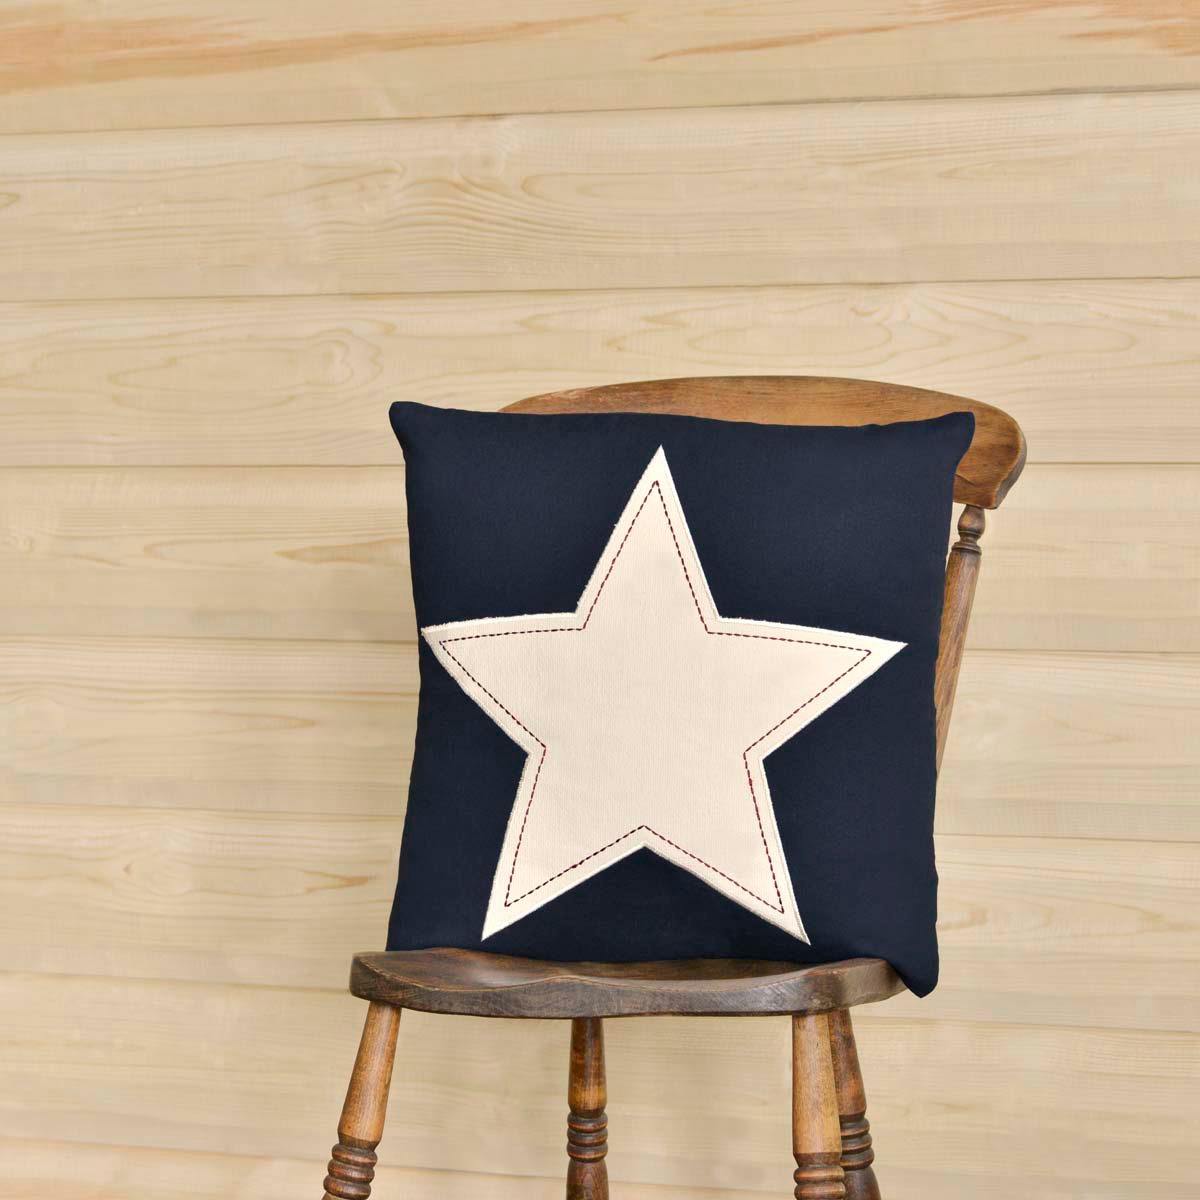 "Navy and White Star Applique Pillow - 18""x18"" - VHC Brands - Country Farmhouse"